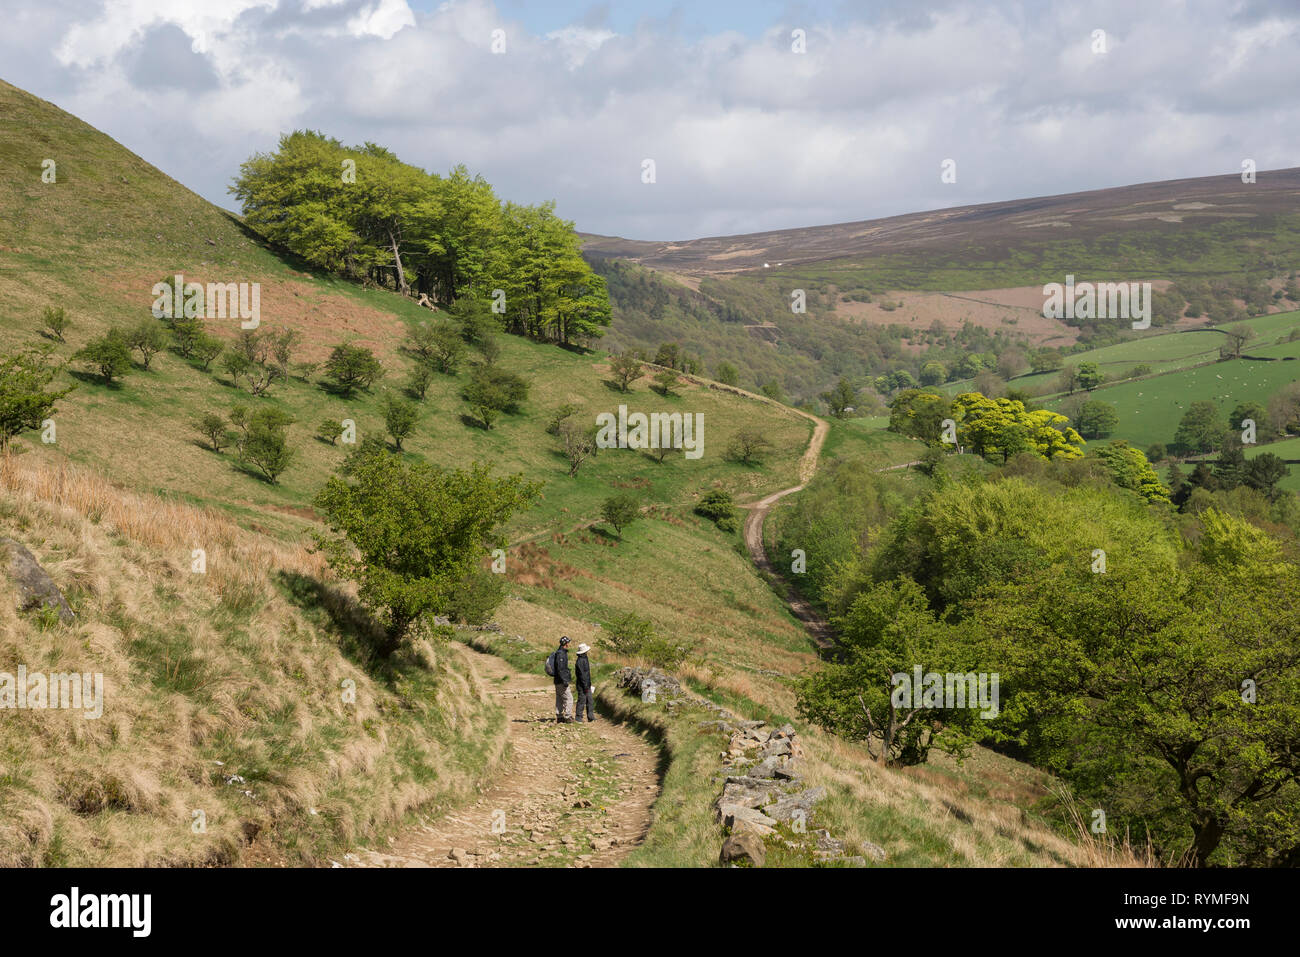 Couple standing to admire the view of the hills near Hayfield in the Peak District national park, Derbyshire, England. A sunny spring day. - Stock Image